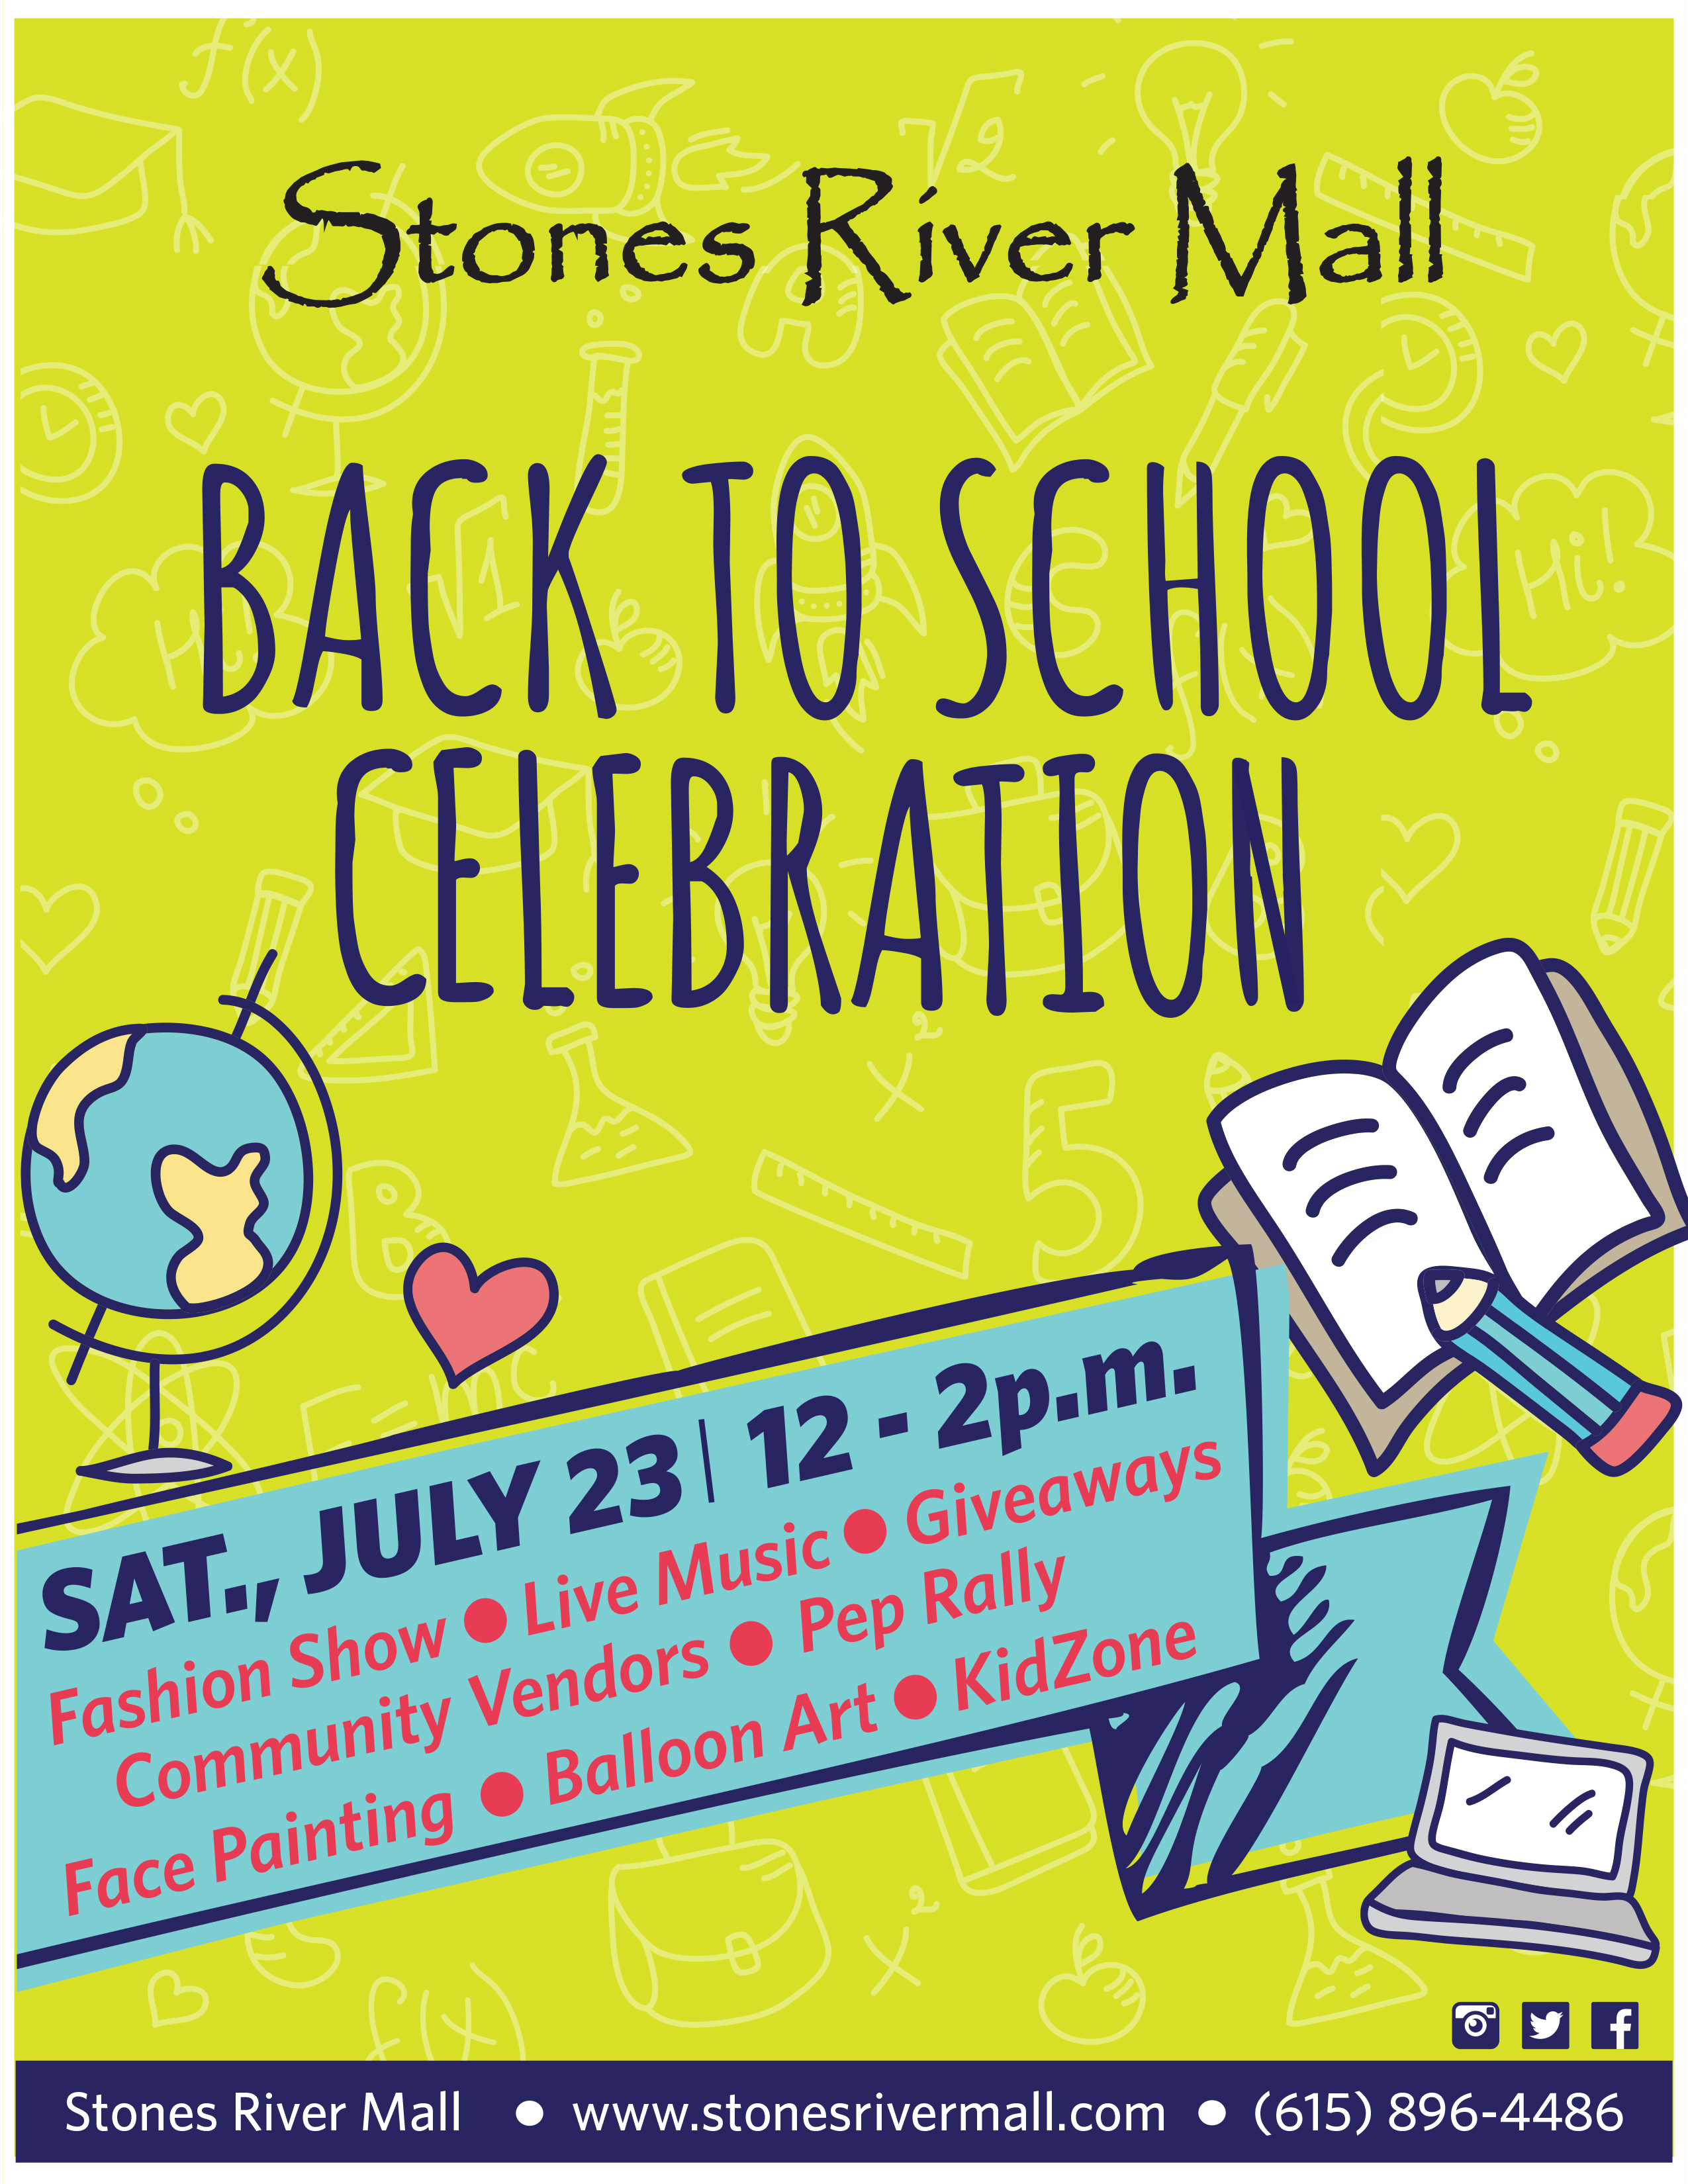 Back to School Event at Stones River Mall